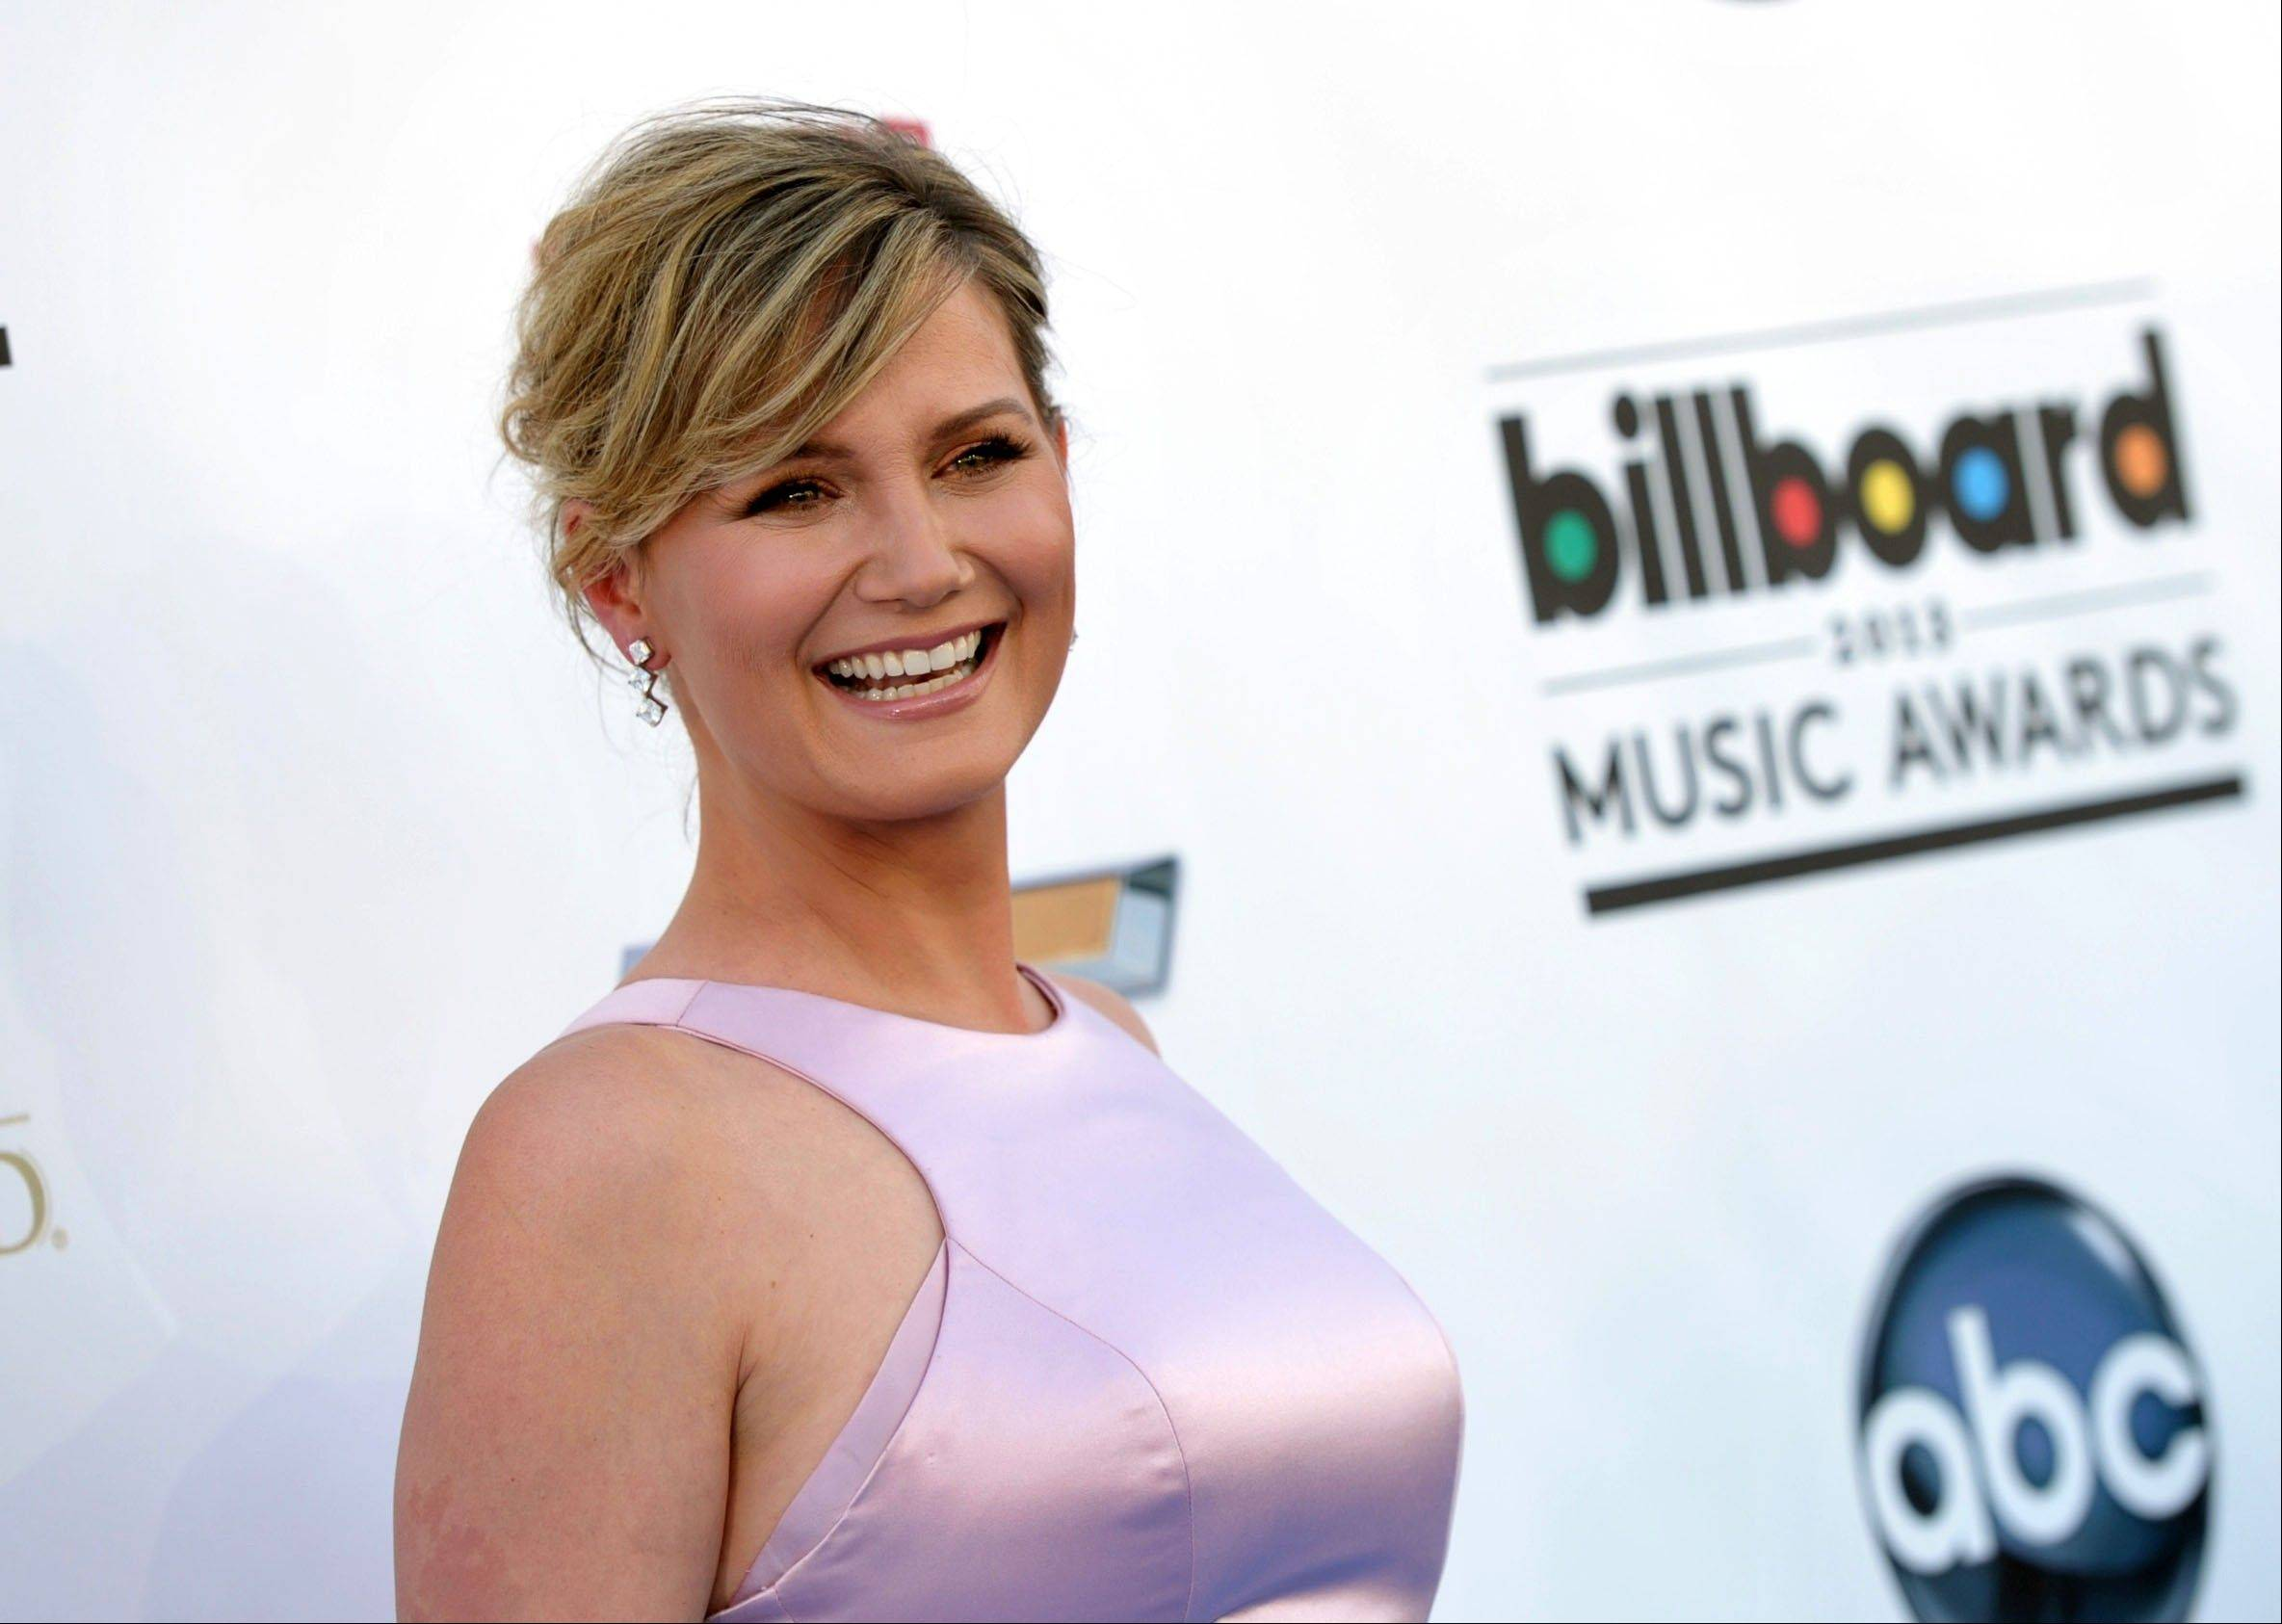 Jennifer Nettles made her career singing with others as a part of the Grammy-winning band Sugarland. But now she�s striking out on her own with her first solo album, �That Girl.�